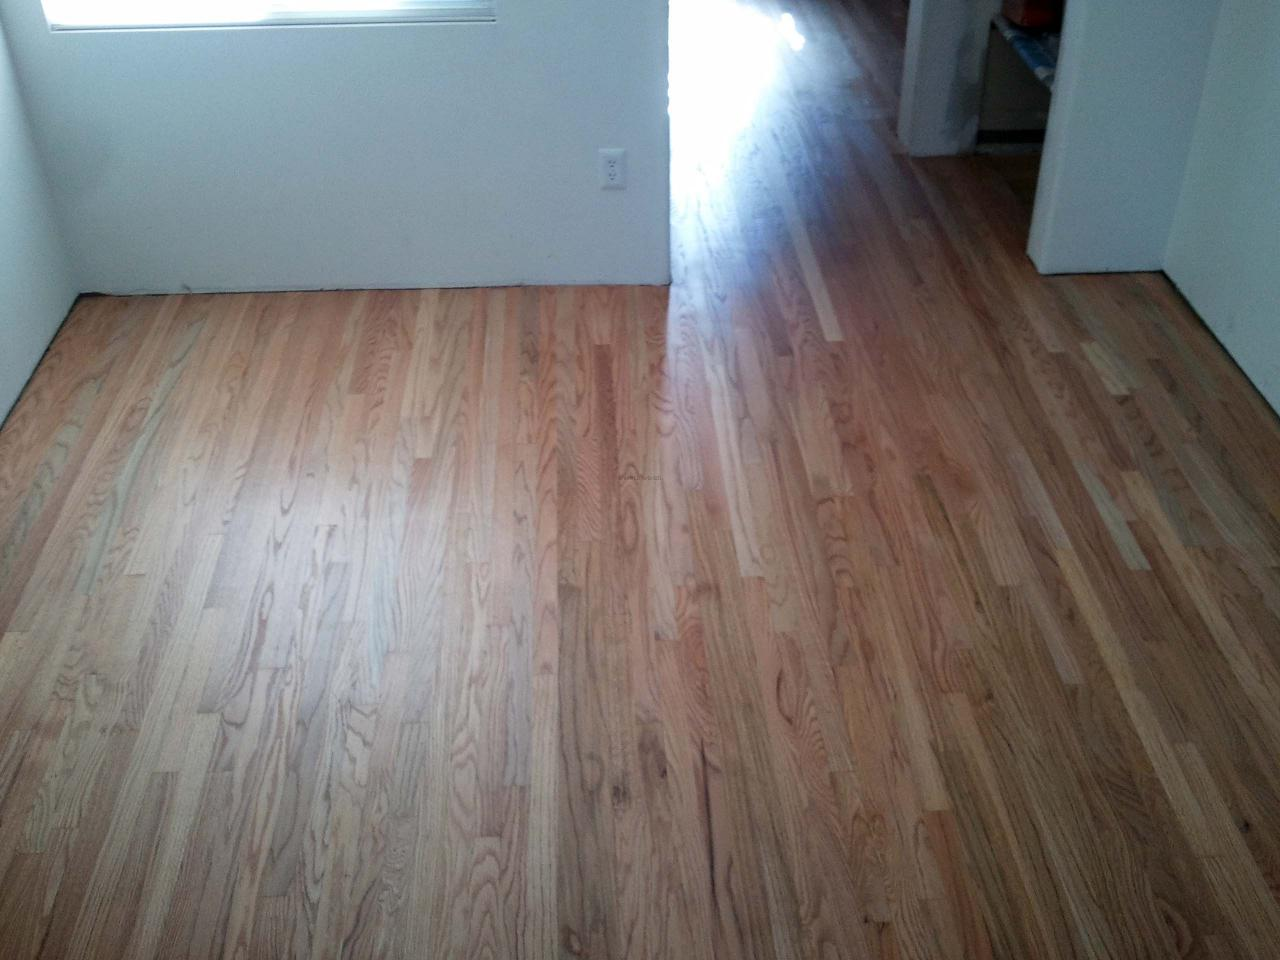 SAN DIEGO HARDWOOD FLOOR RESTORATION 8586990072 LICENSED